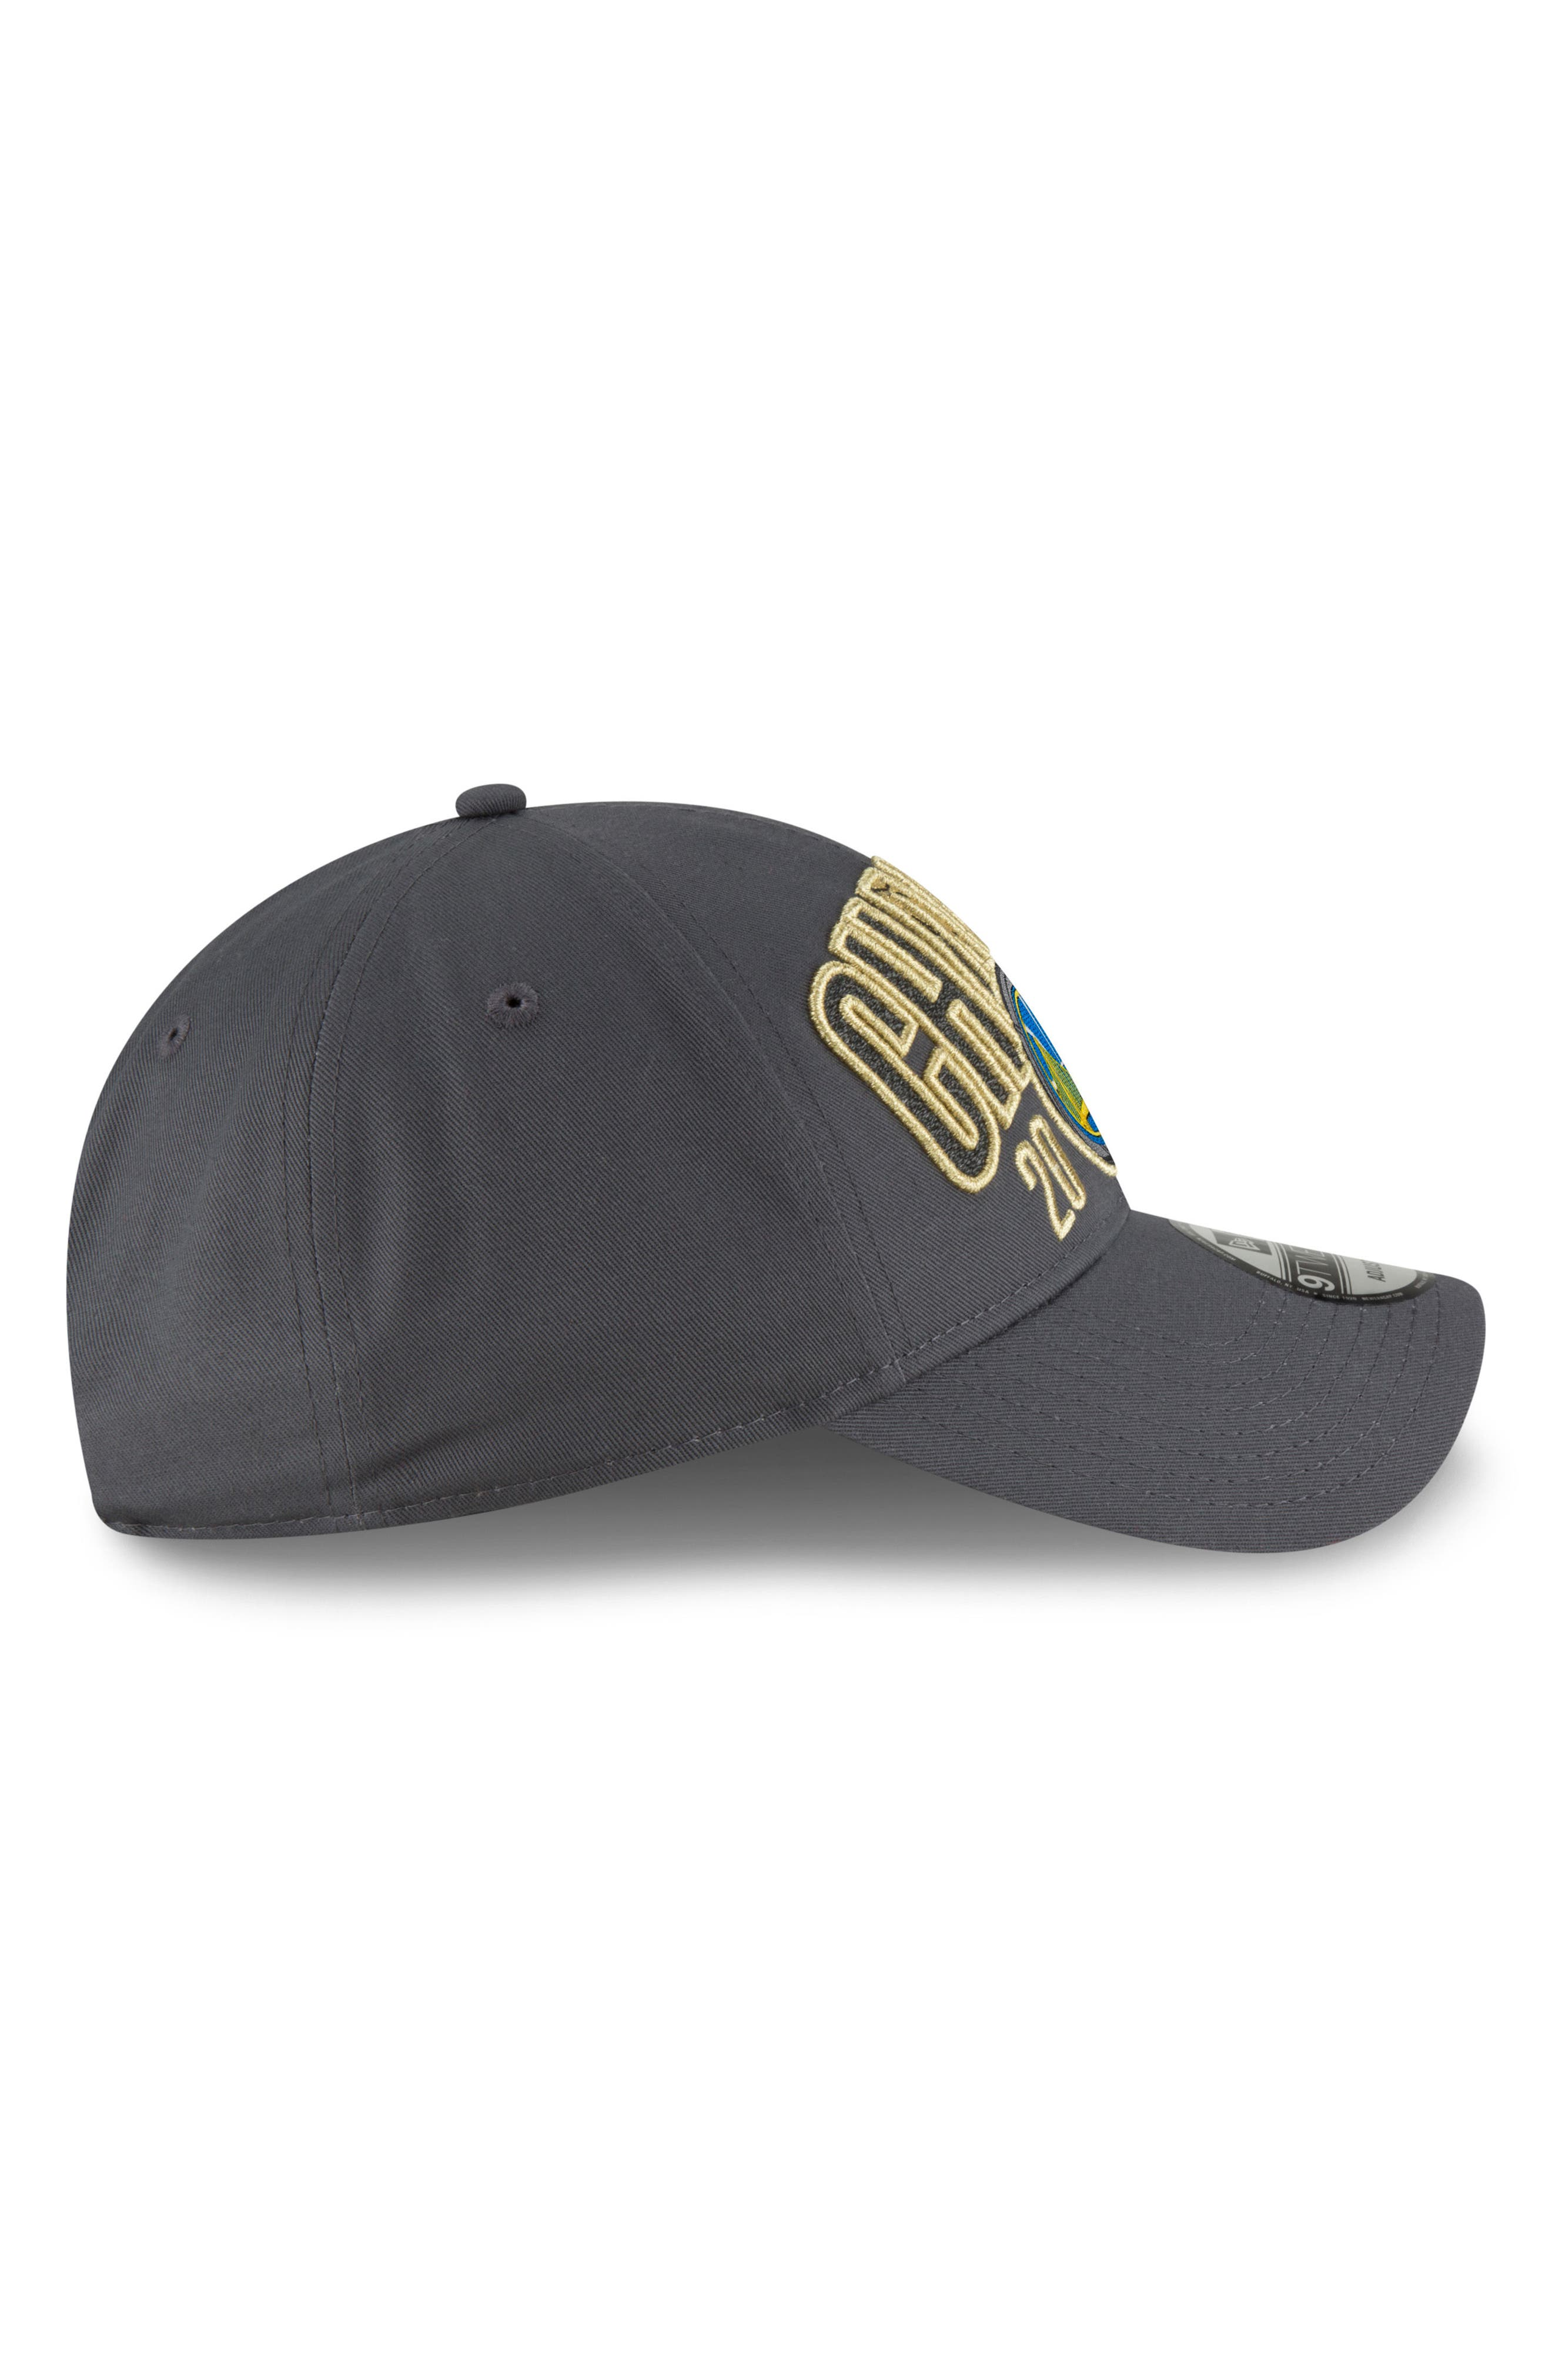 2018 NBA Champions - Golden State Warriors 9Twenty Baseball Cap,                             Alternate thumbnail 3, color,                             Golden State Warriors